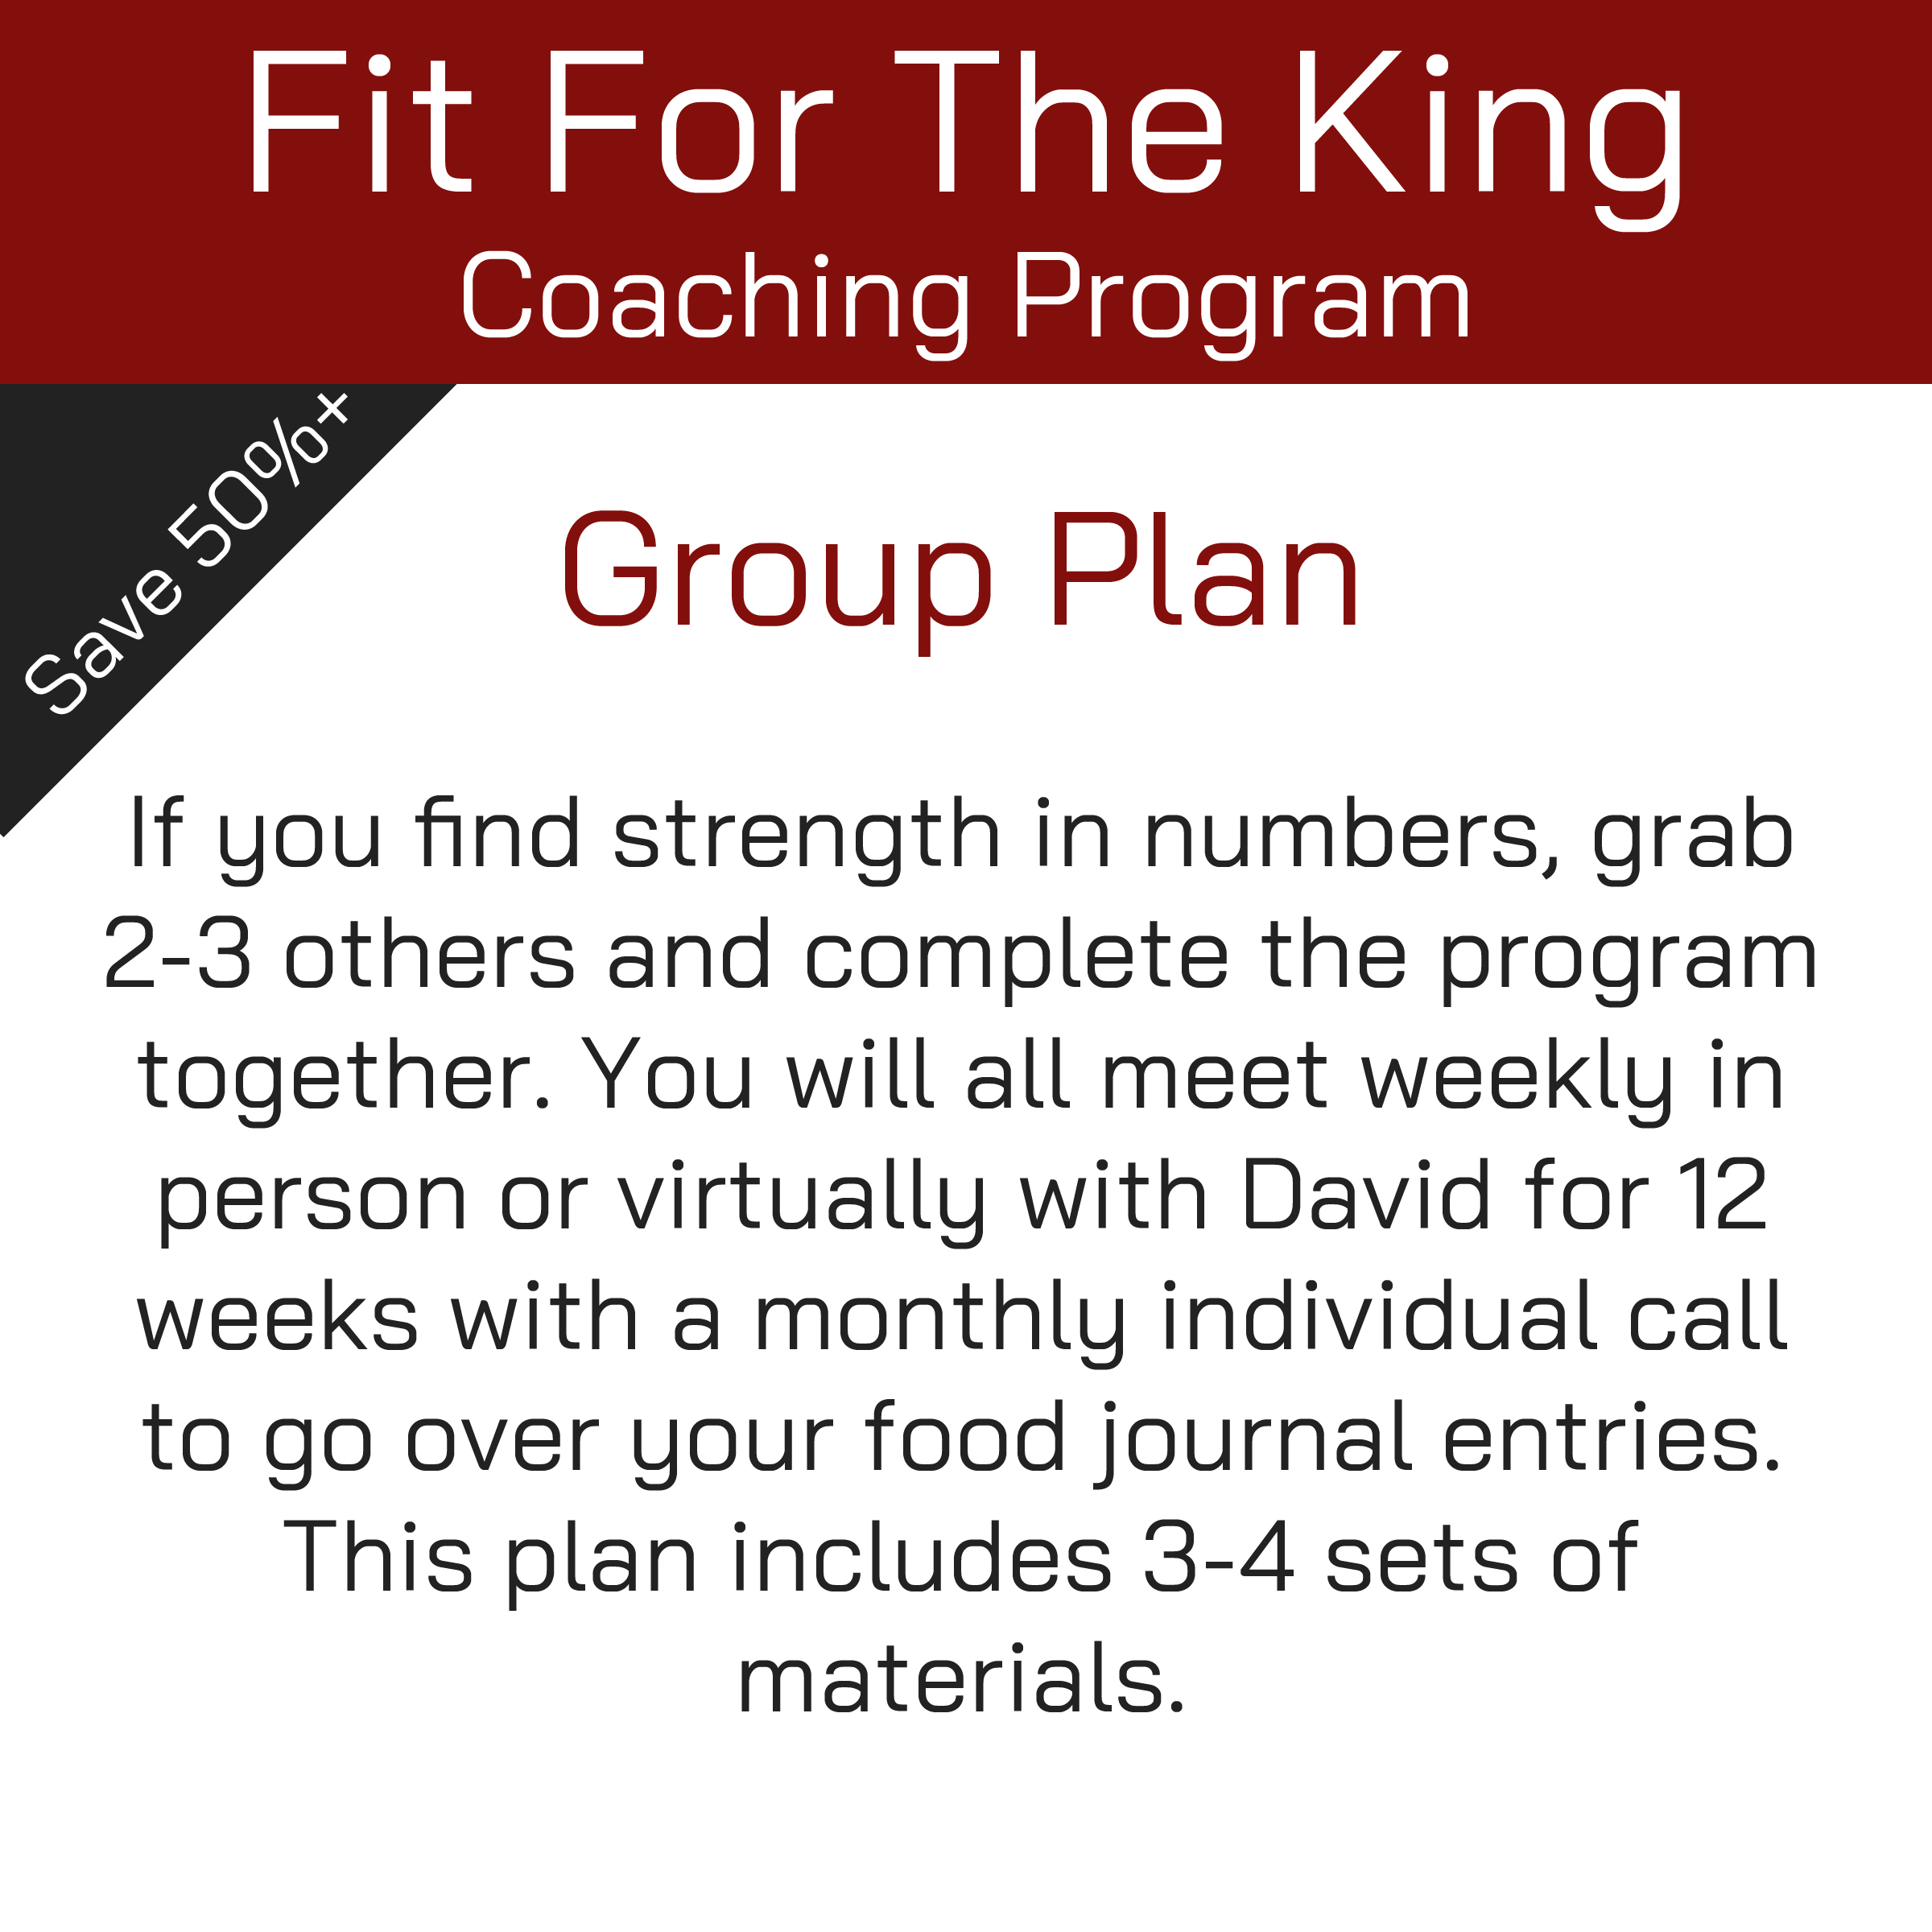 Fit For The King Coaching Program - Group's Plan